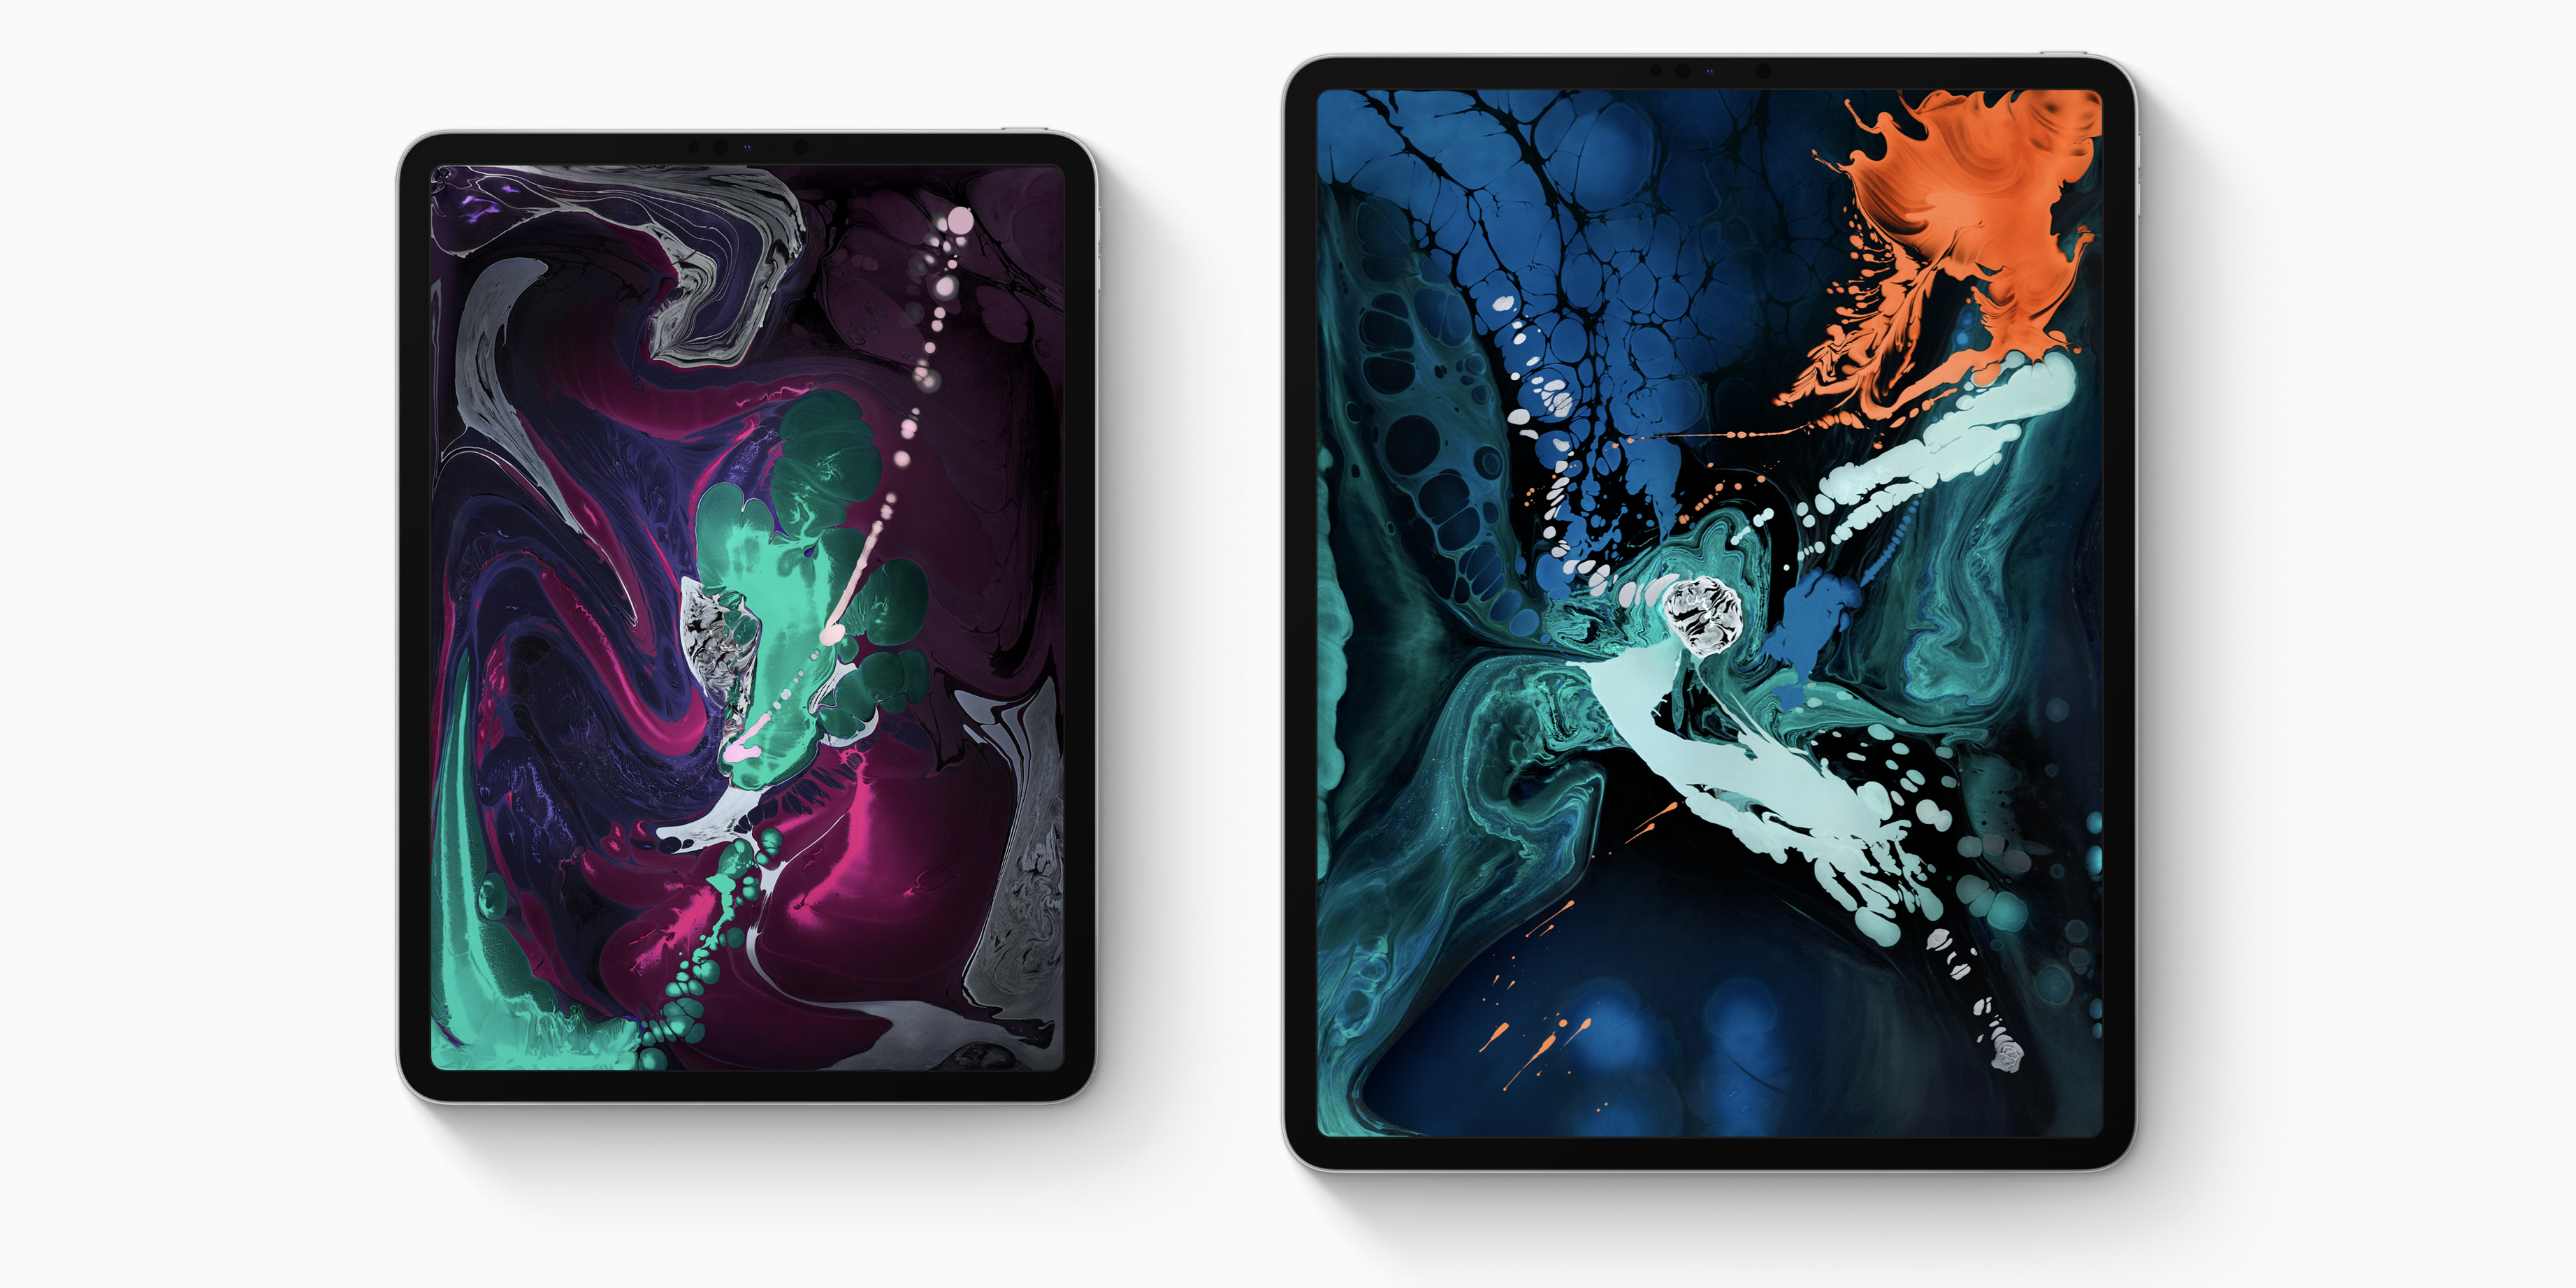 Black Friday pricing returns on iPad Pro, save $199 on various models